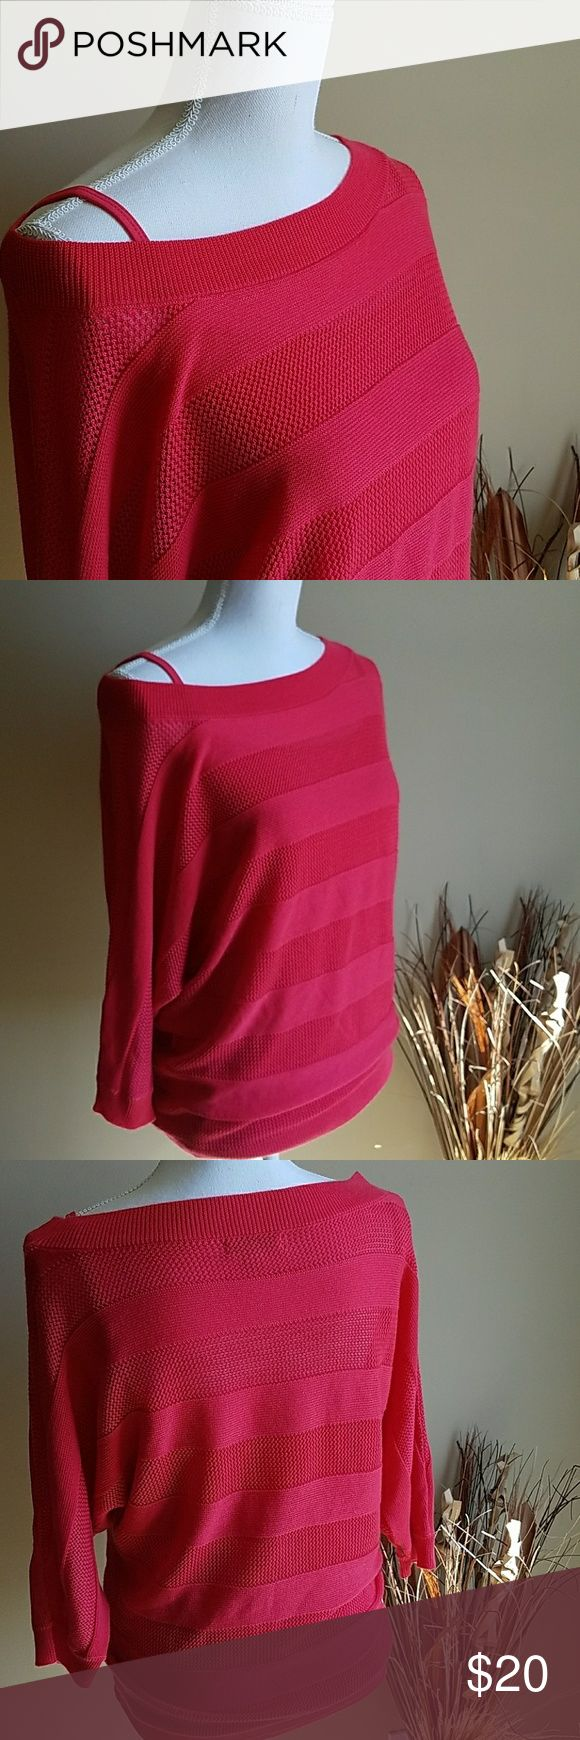 New York and Co. Cami/Sweater Bundle Berry Pink cami size large. NWOT. Matching NWOT berry pink sweater, boat neck can be worn off one shoulder. No pulls or piling on sweater. No stains or flaws on either garmet. New York & Company Sweaters